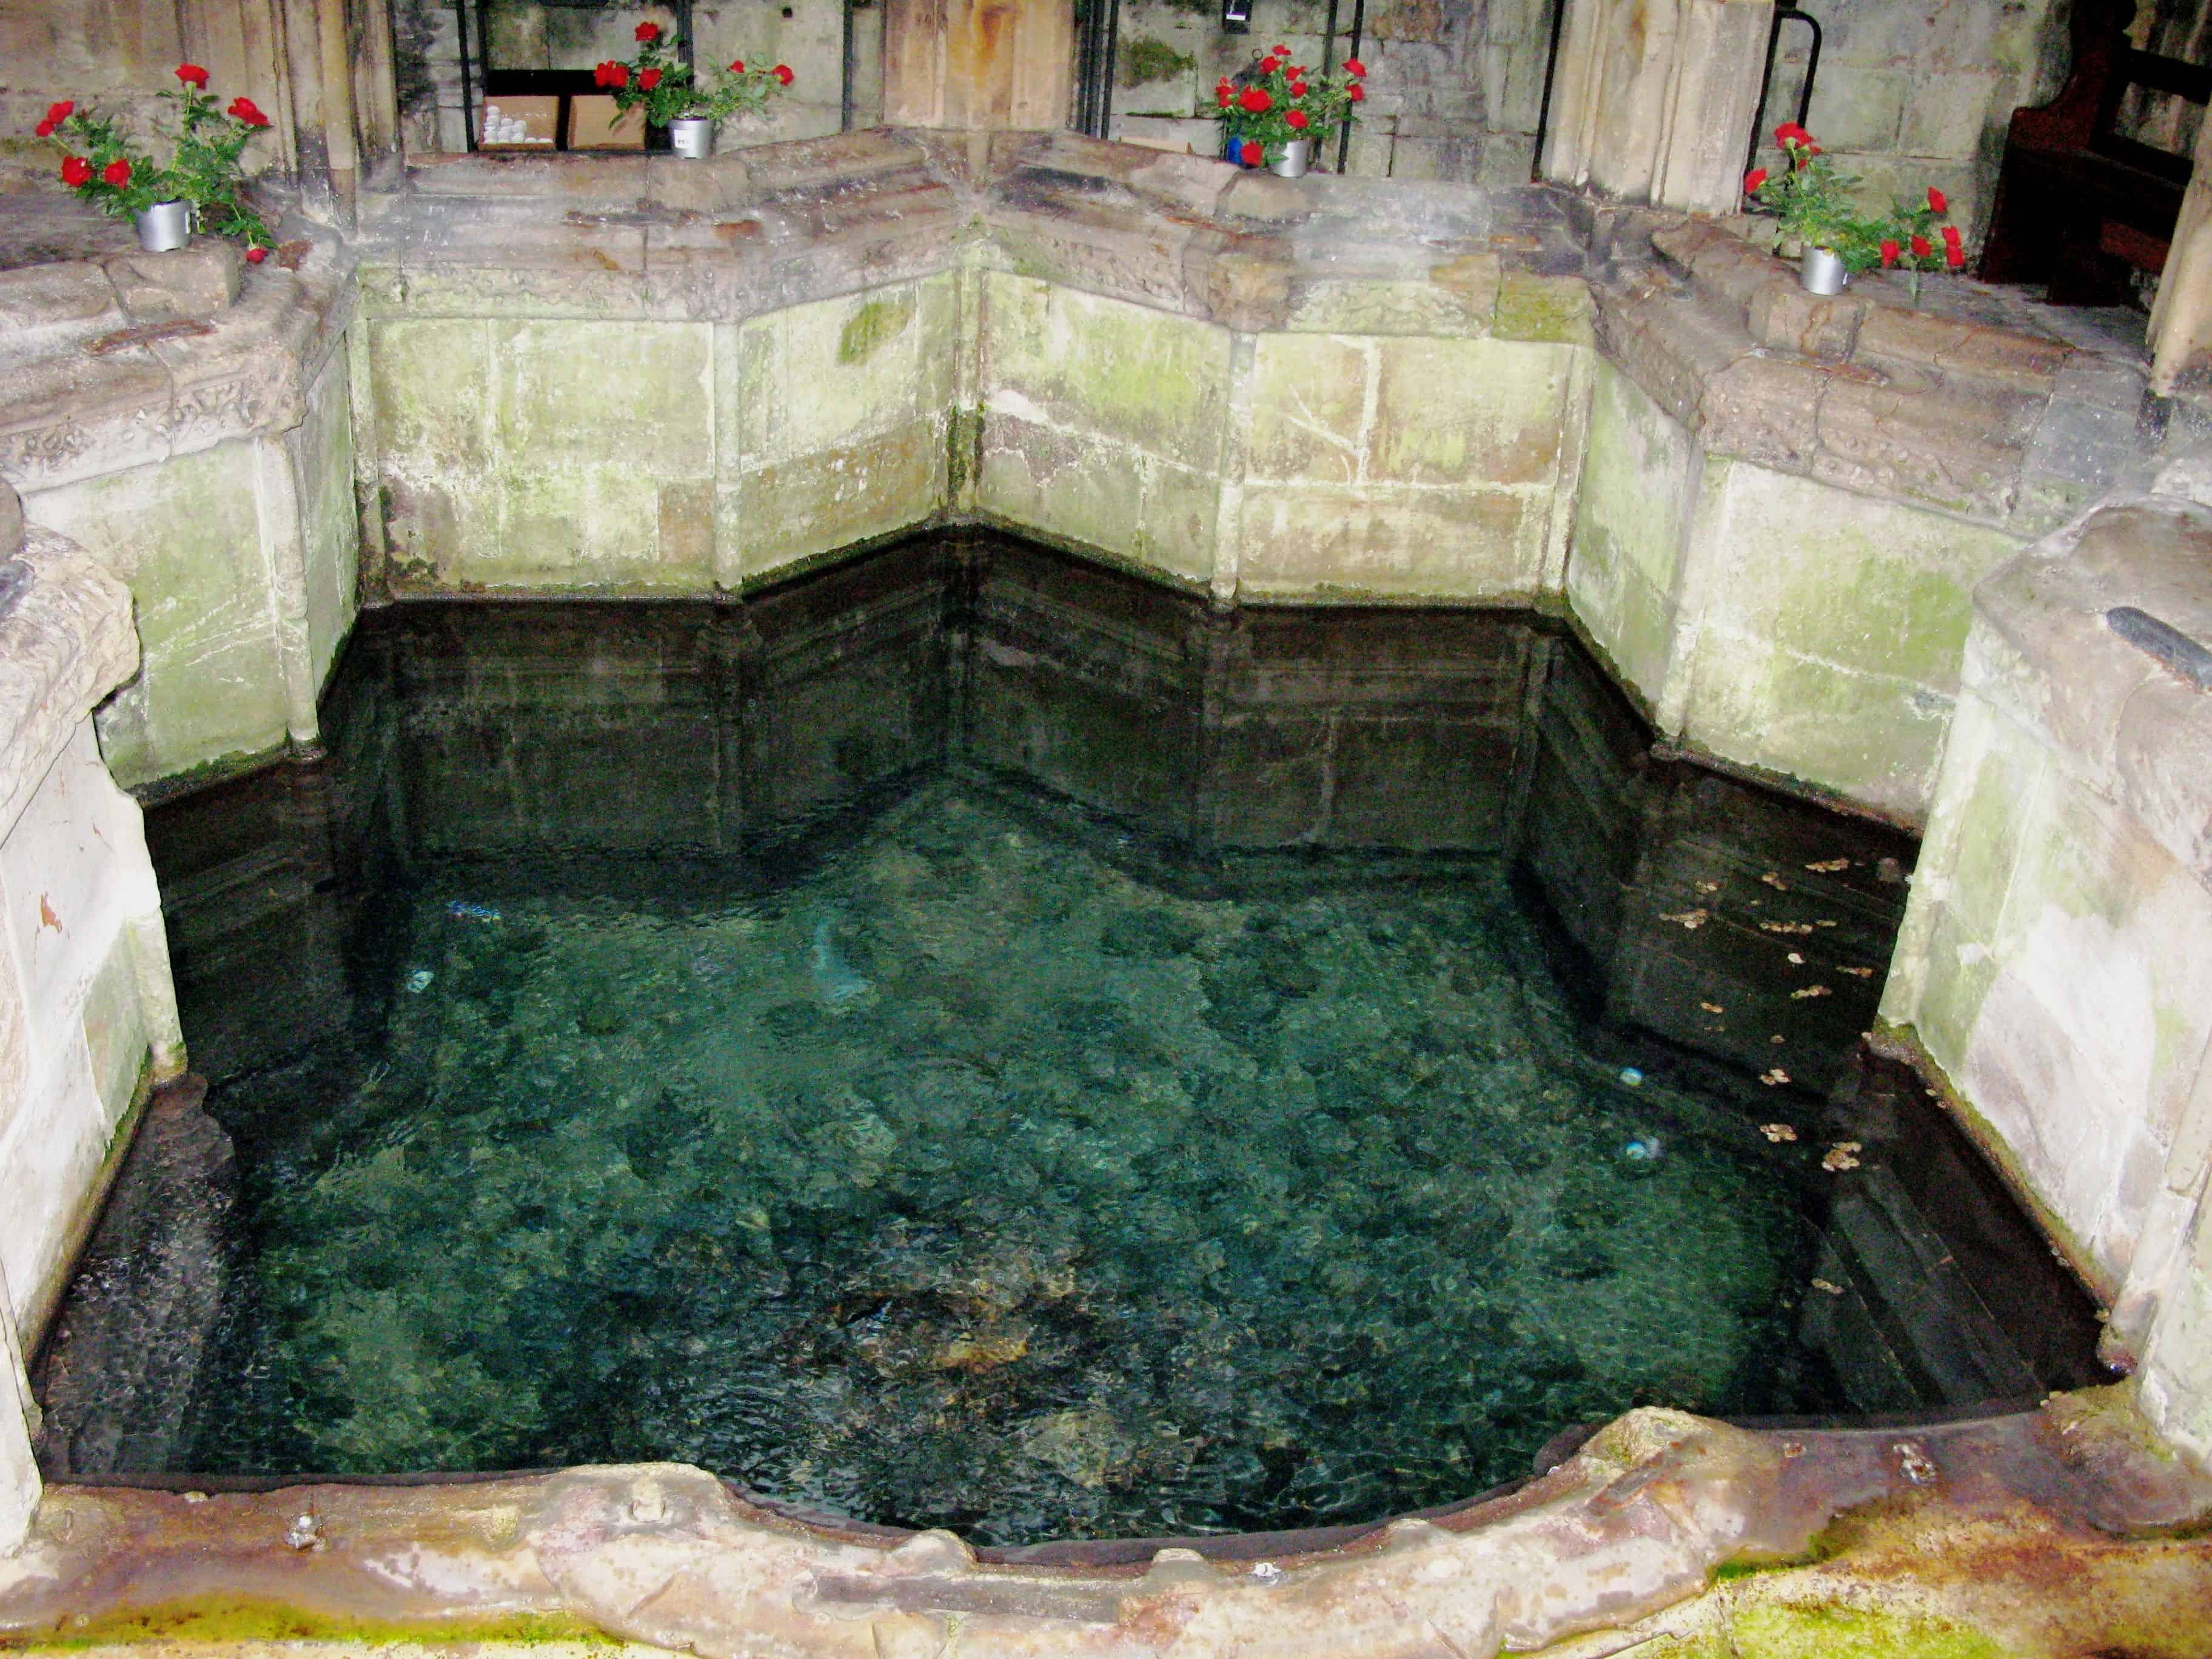 Photograph of turquoise water in star shaped stone well. Four vases of red flowers have been placed around the edge